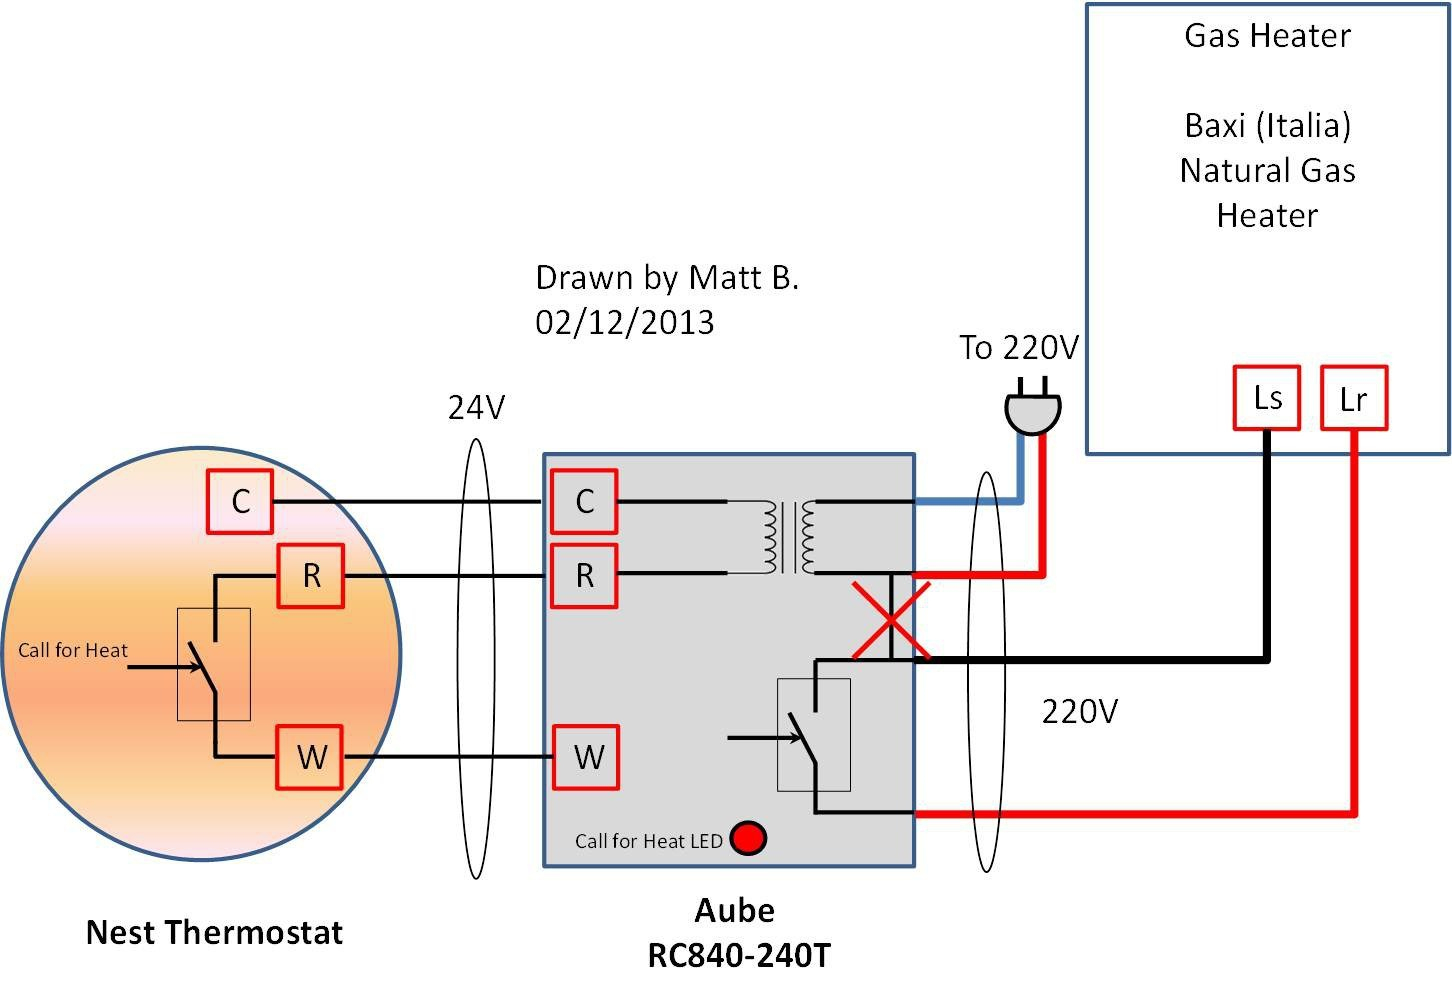 Wiring Diagram For Nest Thermostat Uk | Wiring Diagram - Wiring Diagram Nest Model 02A